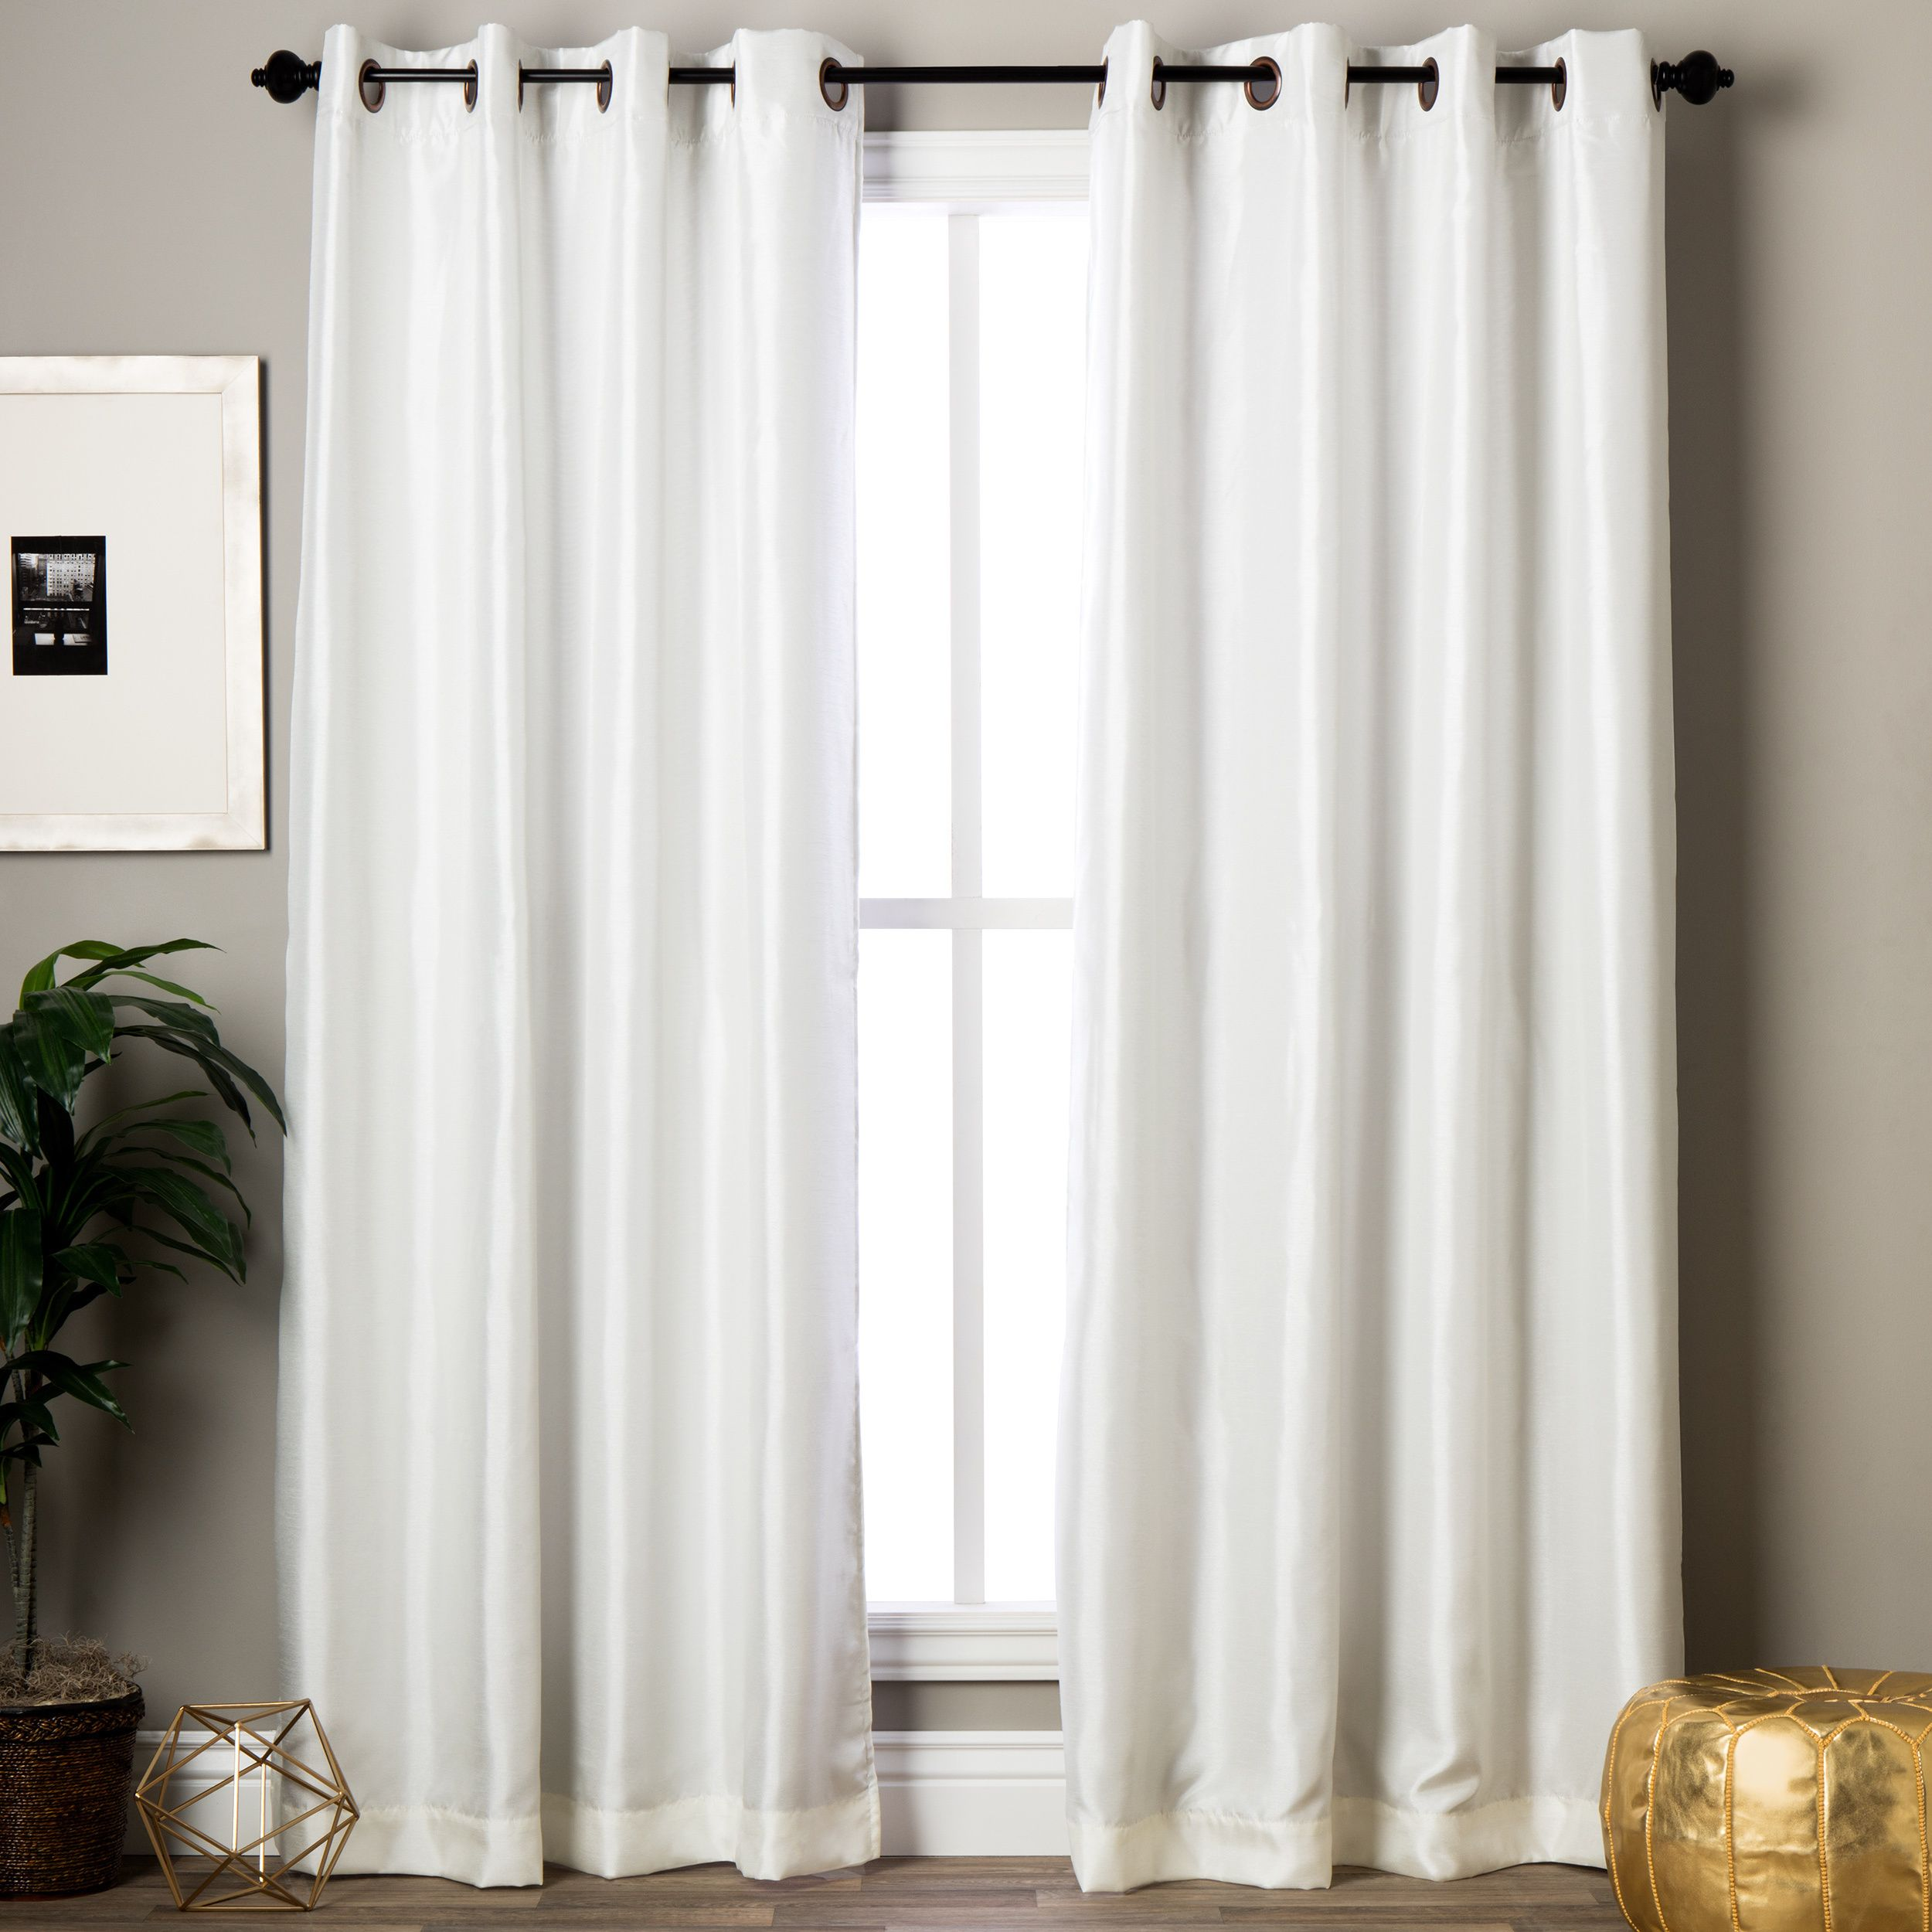 curtain noise south walmart blocking africa sound soozone curtains canada